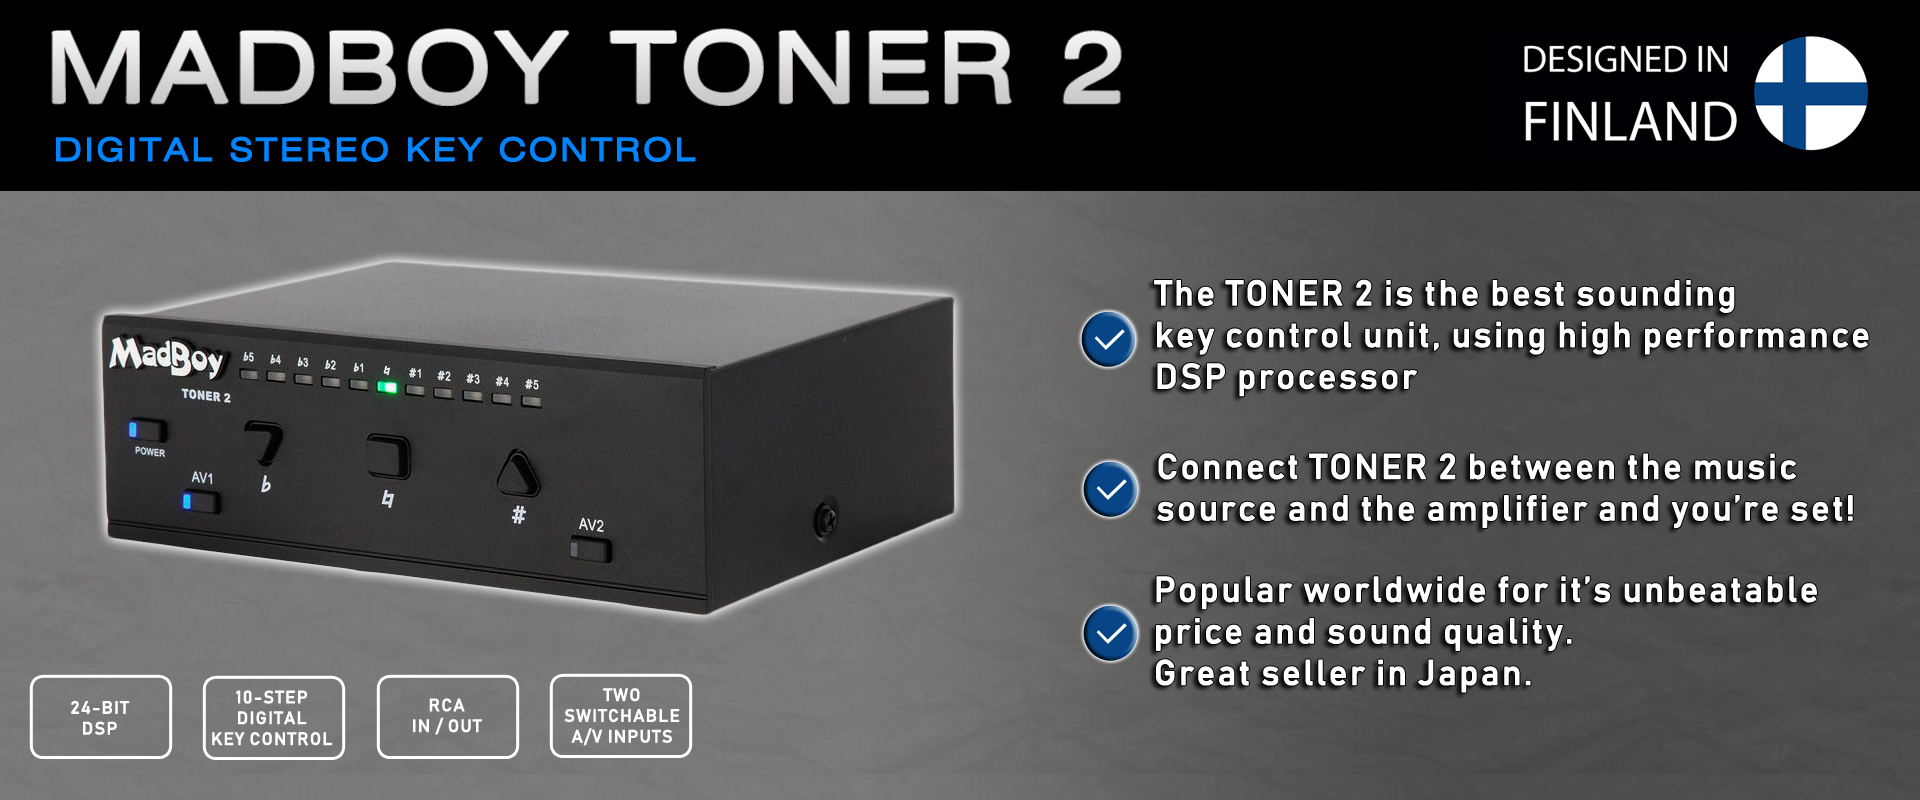 TONER 2 DIGITAL STEREO KEY CONTROL